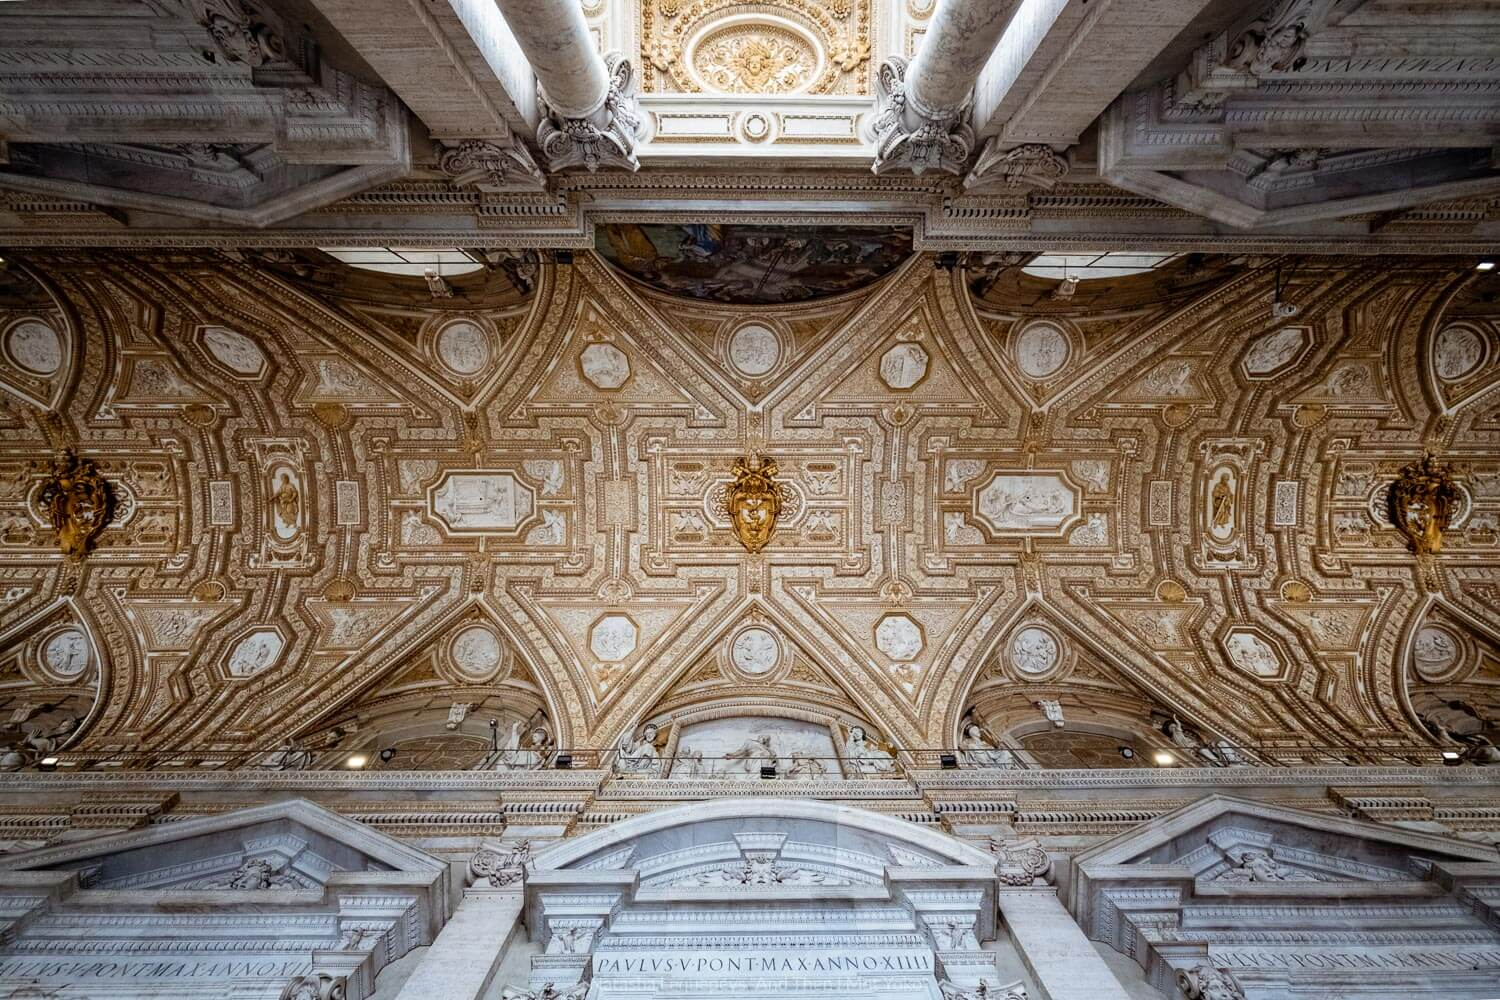 """The ceiling outside of Saint Peter's Basilica, Vatican. Travel photography and guide by © Natasha Lequepeys for """"And Then I Met Yoko"""". #rome #italy #travelblog #travelphotography"""